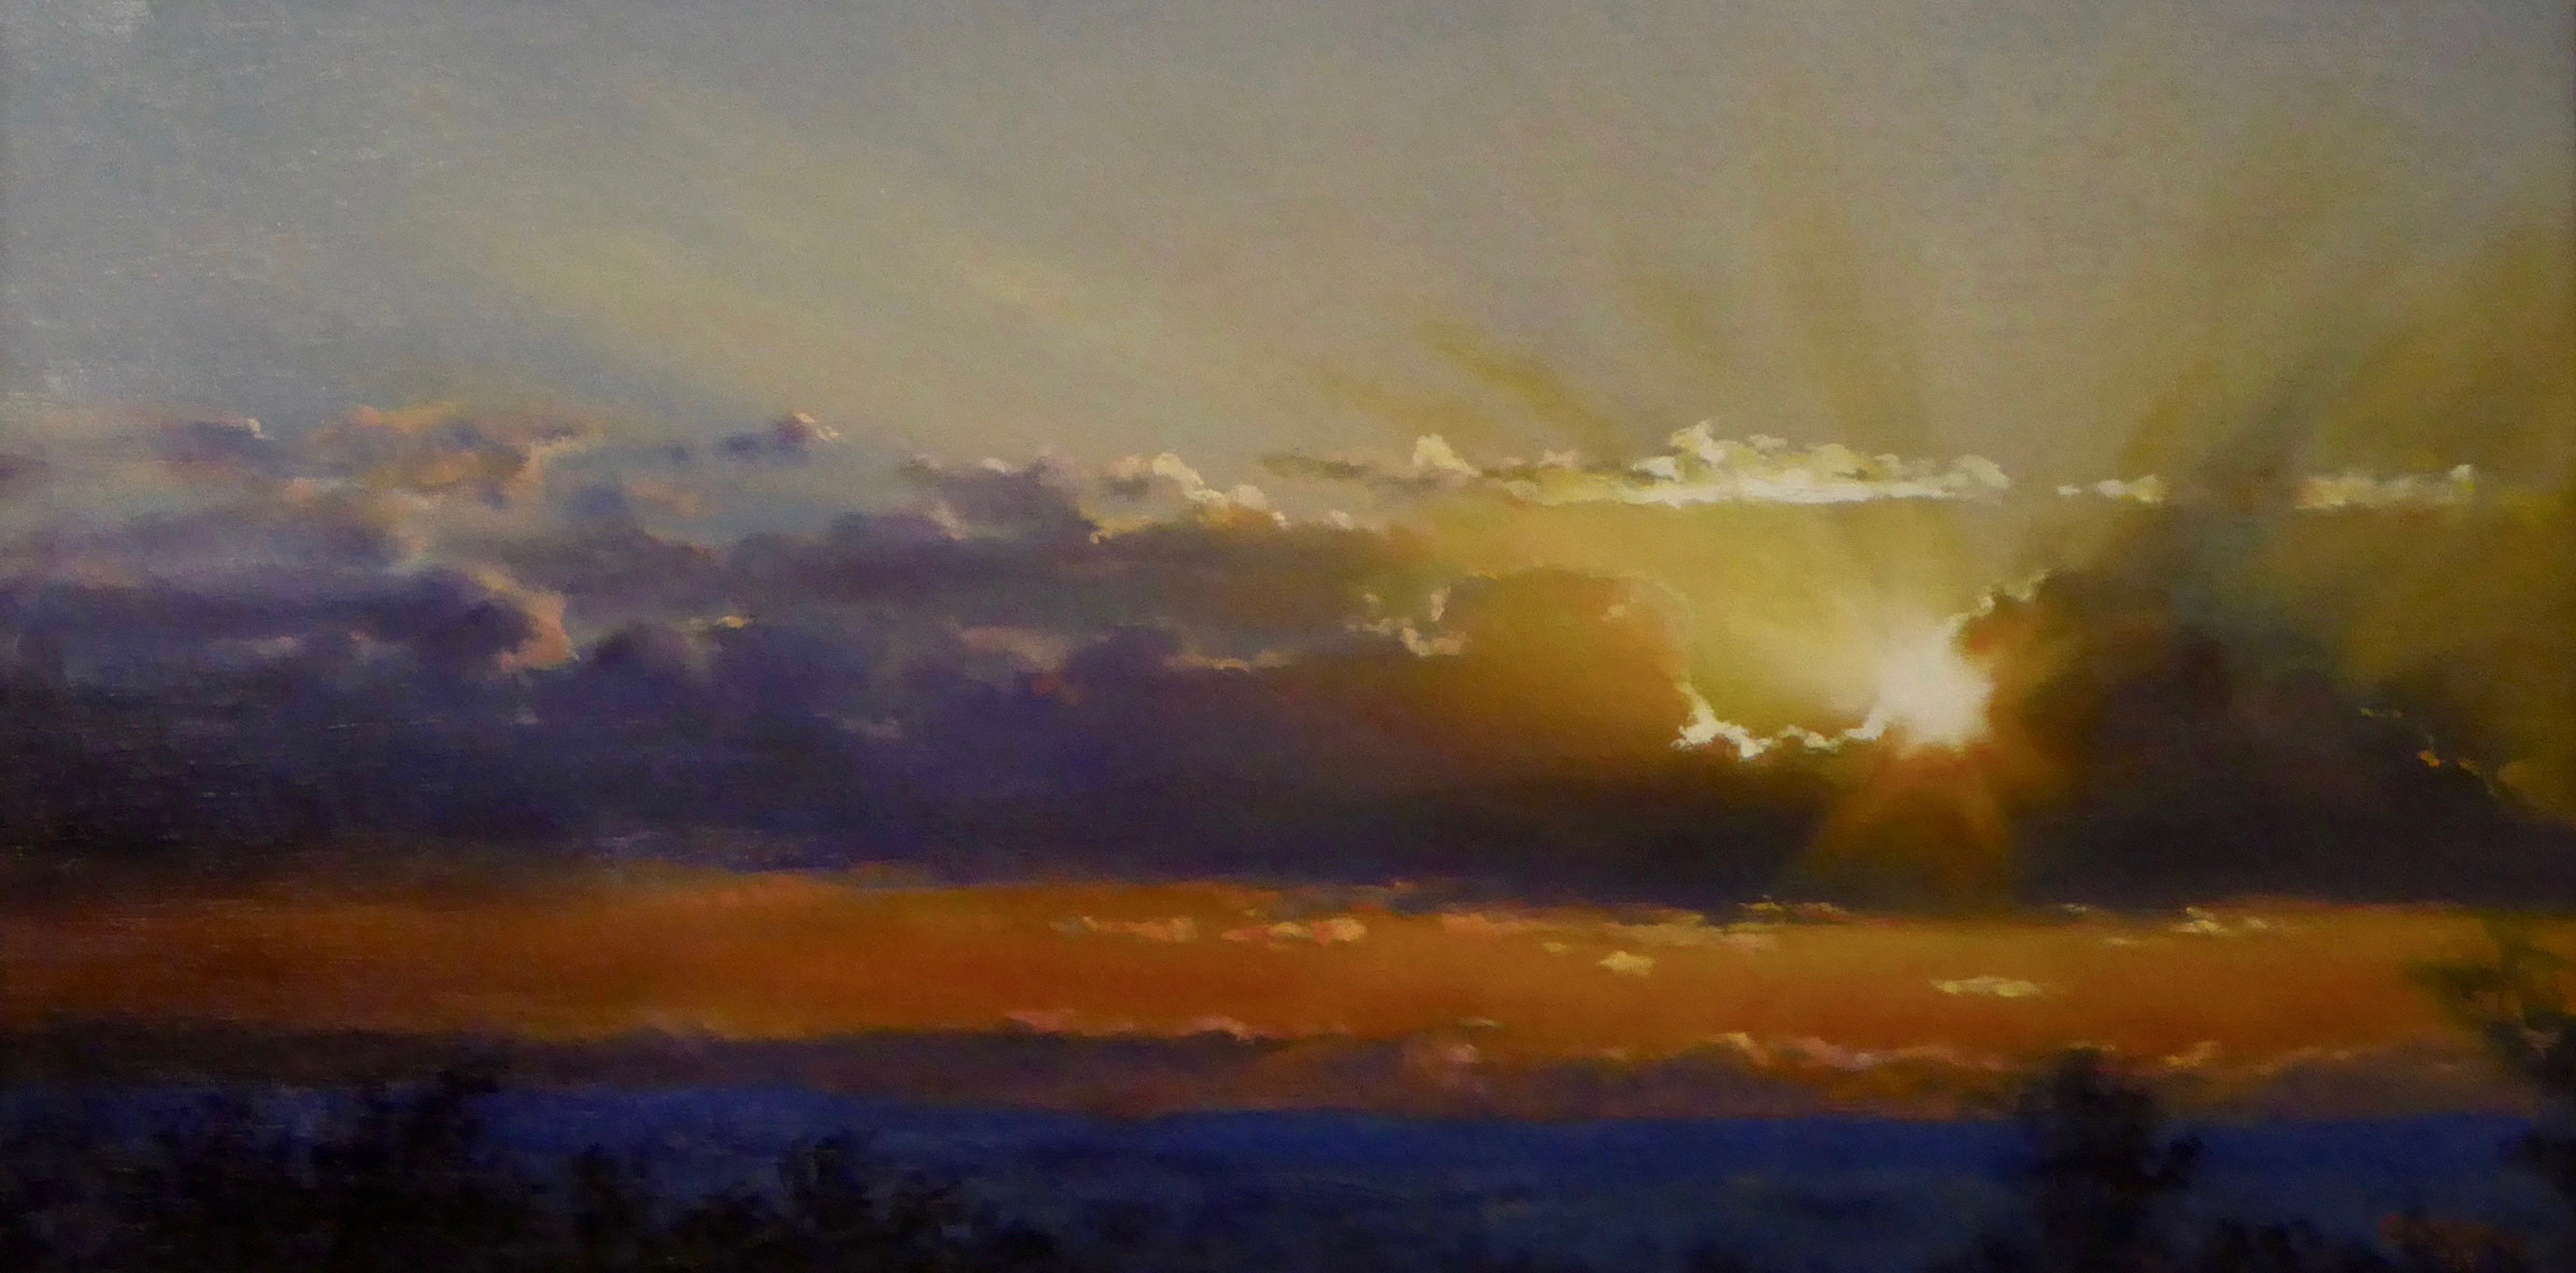 Early morning sunrise bursting through clouds. Oil painting on marine ply.